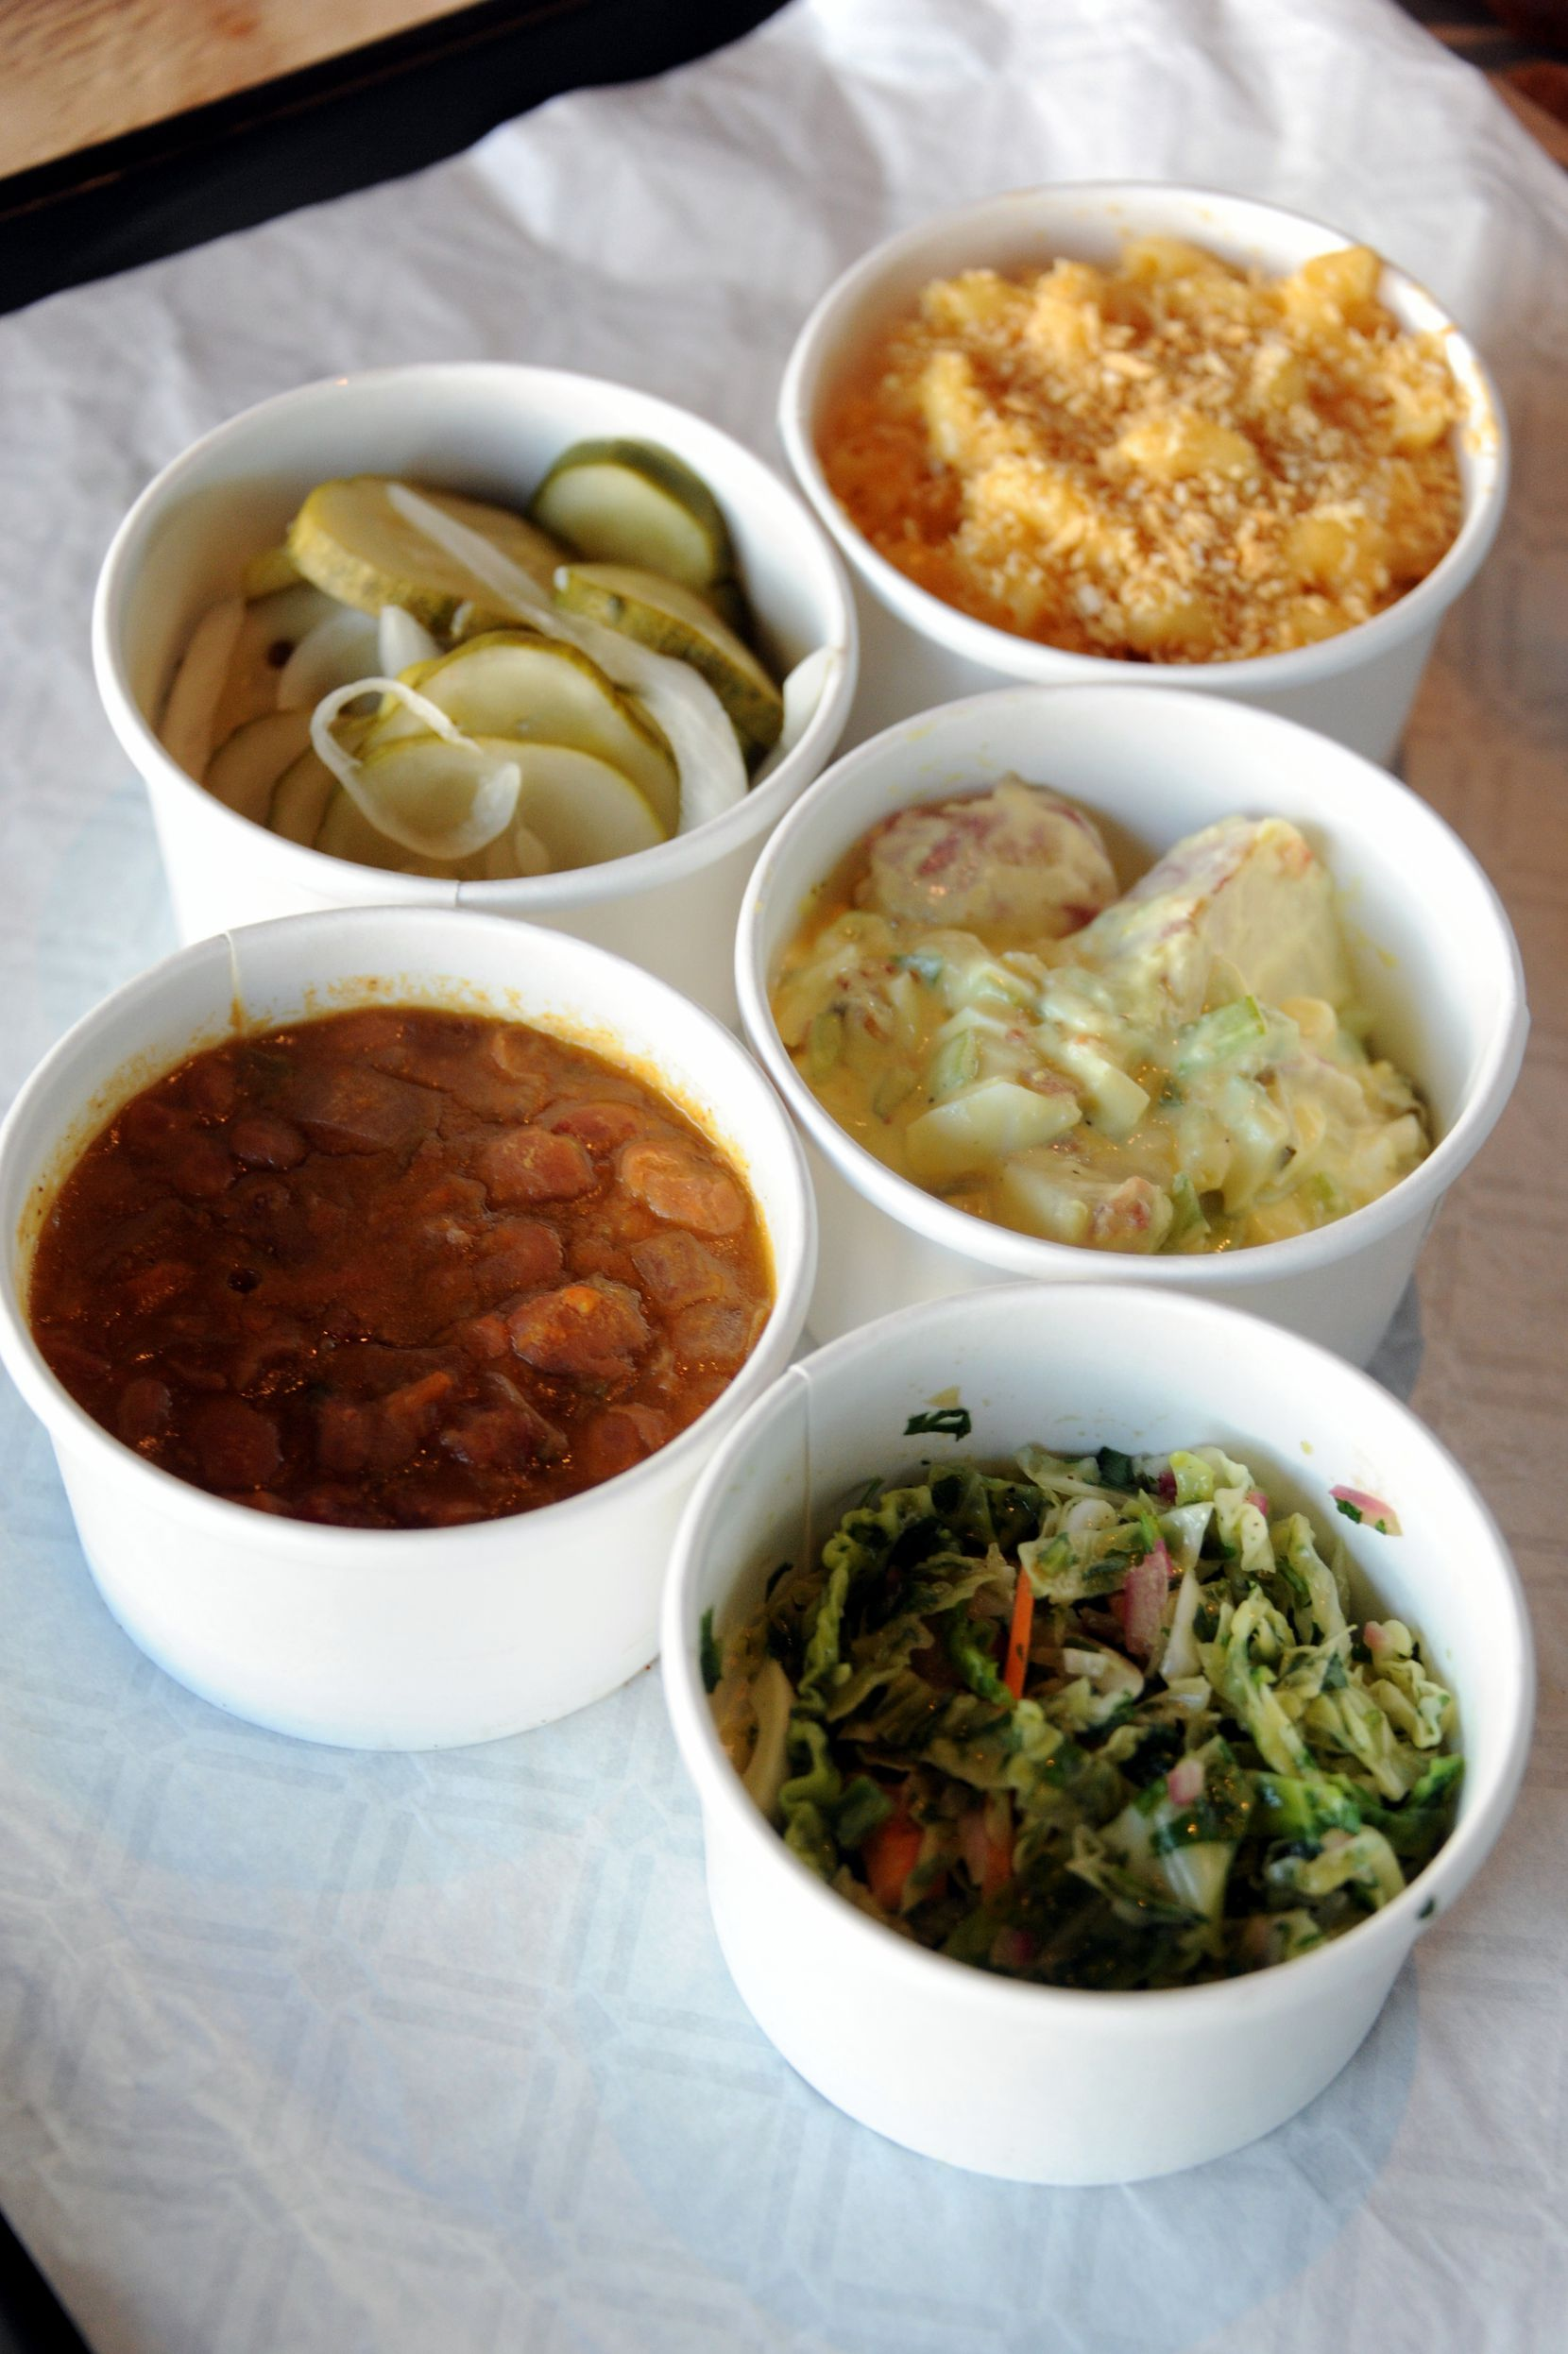 Guests can choose sides such as coleslaw, beans, potato salad, mac n' cheese and house-made pickles at Ten 50 BBQ in Richardson.